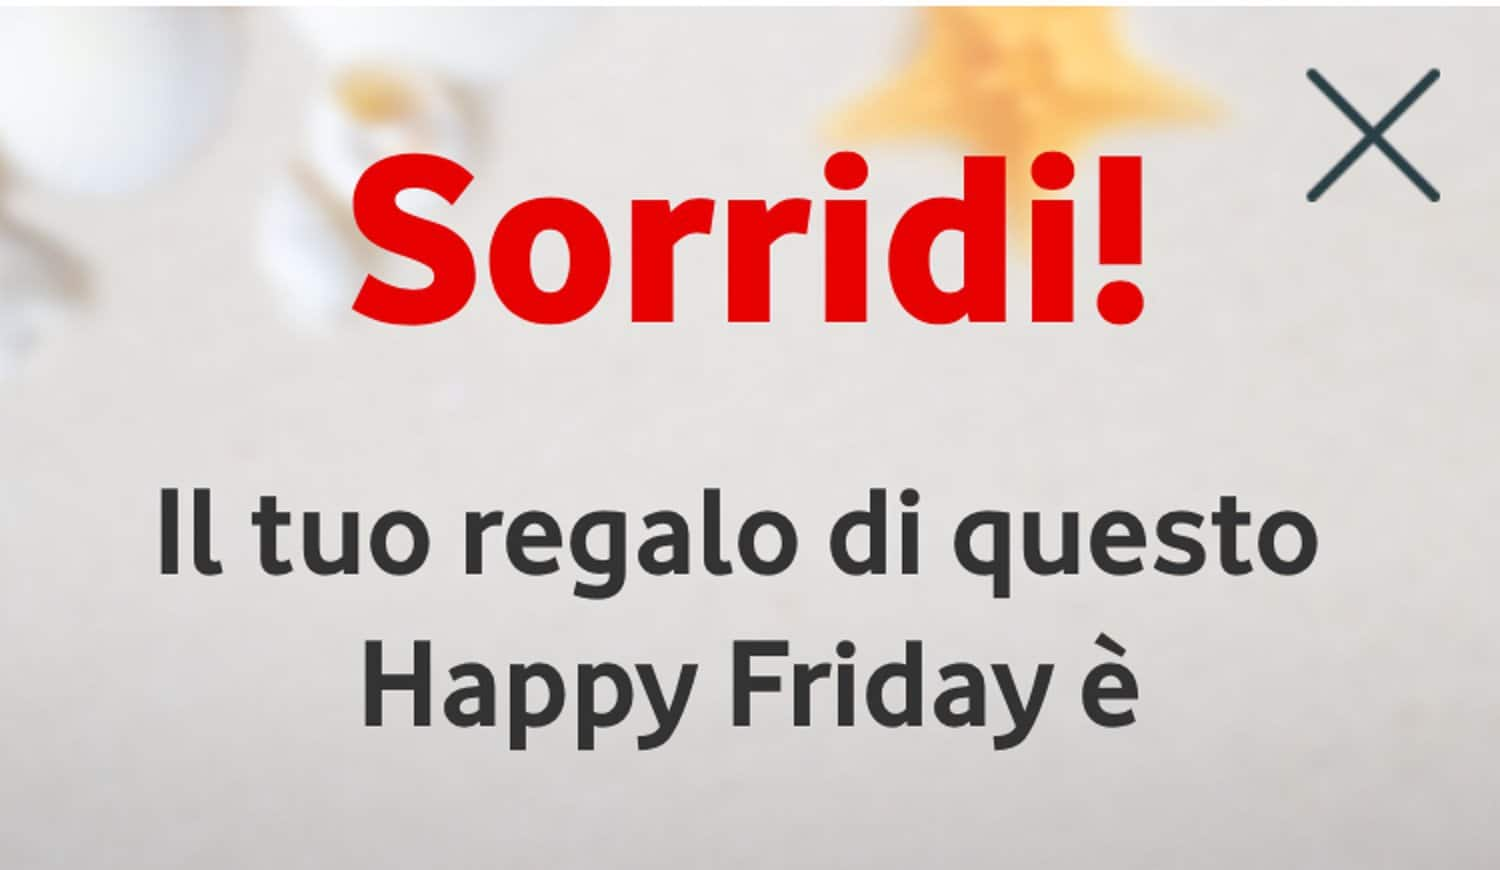 Anche oggi è Happy Friday con Vodafone